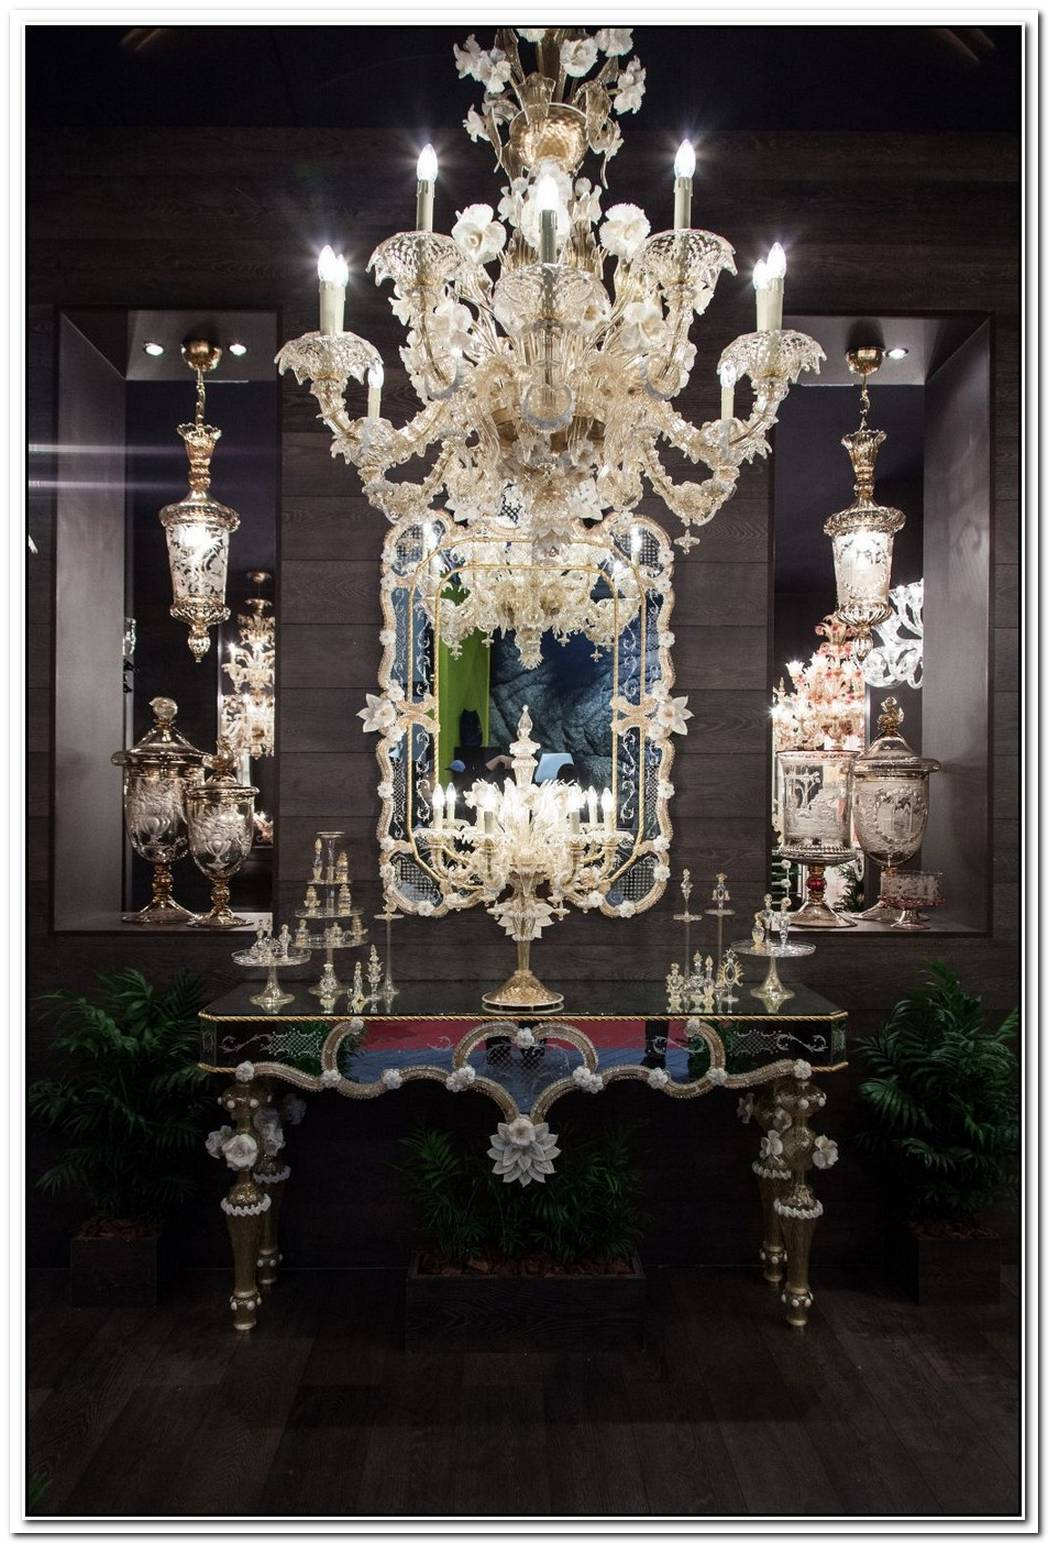 The Crystal Chandelier Like Centerpiece In Our Homes